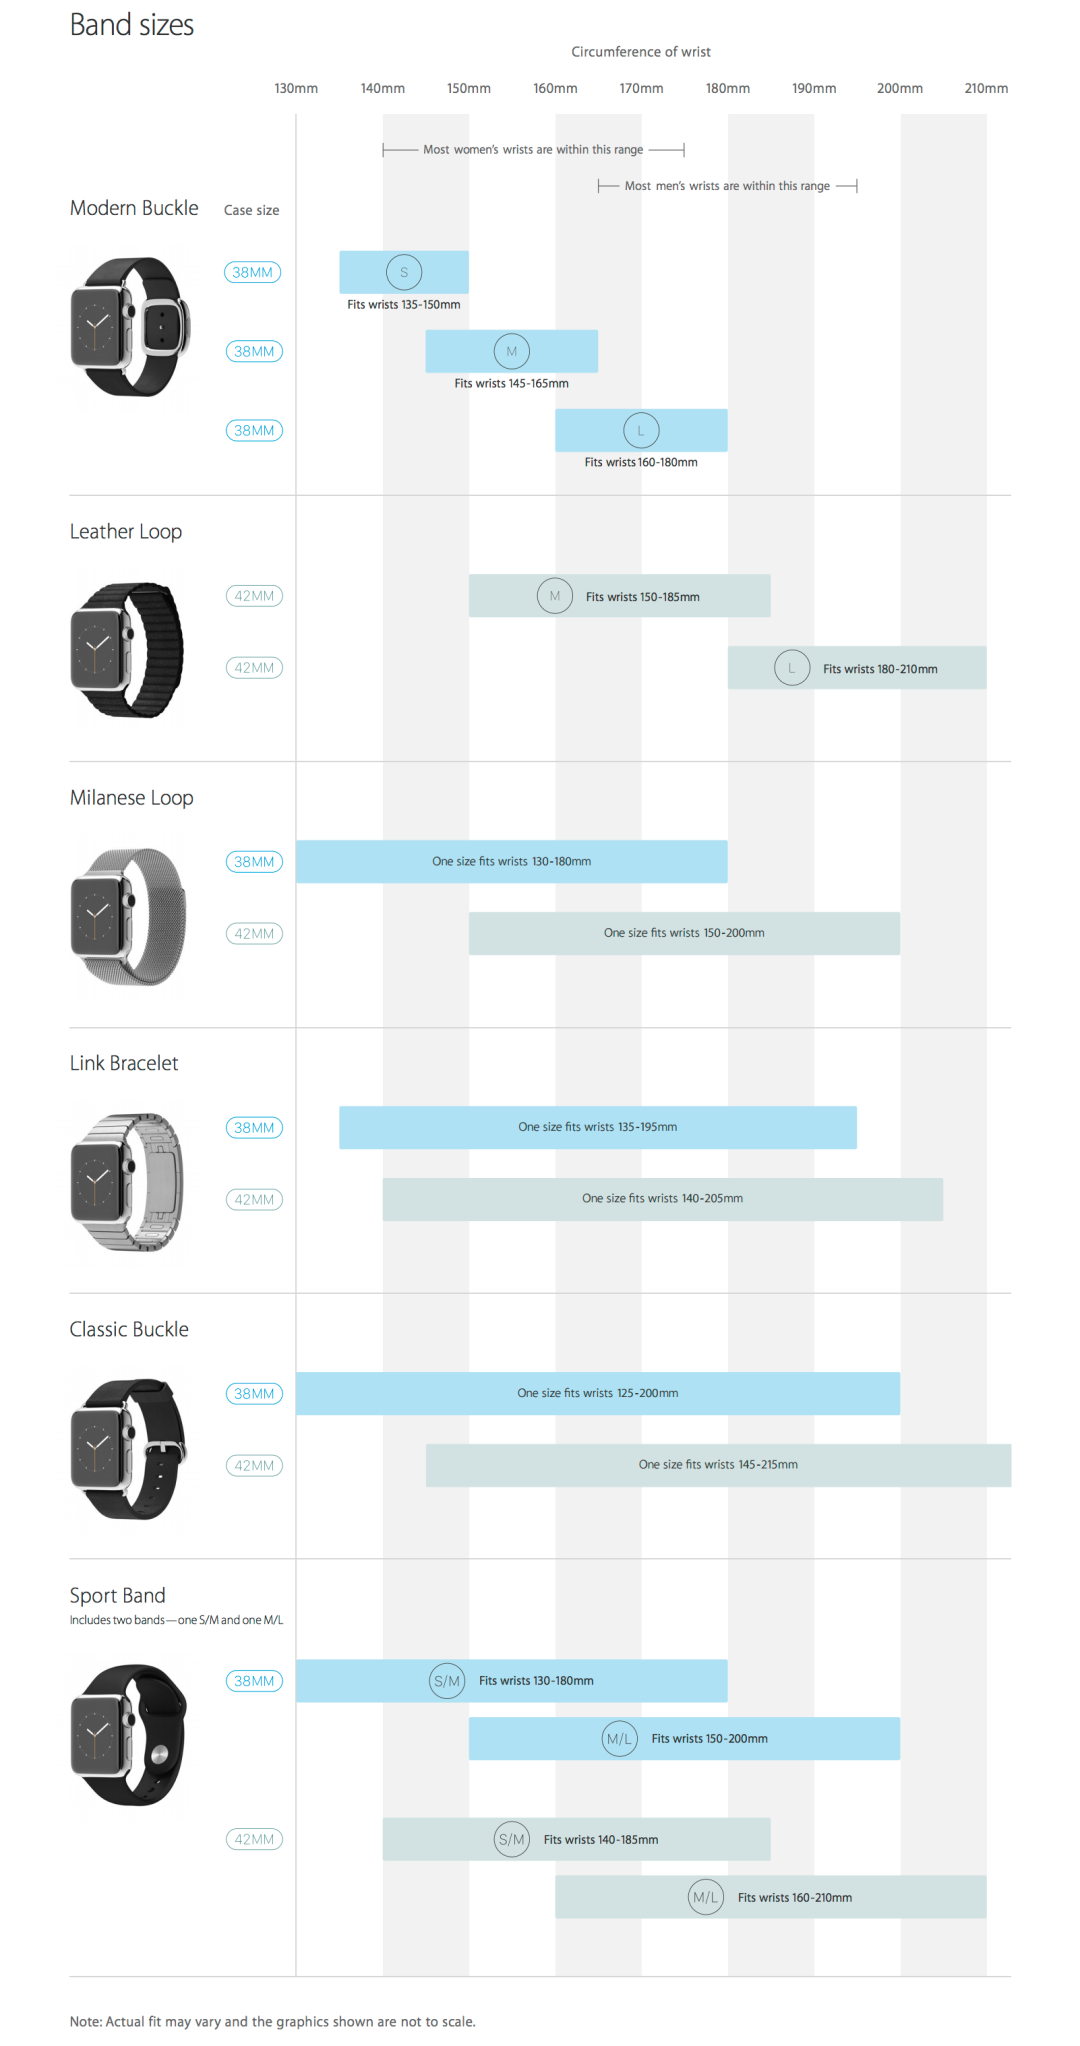 Apple's official Apple Watch sizing guide with band sizes